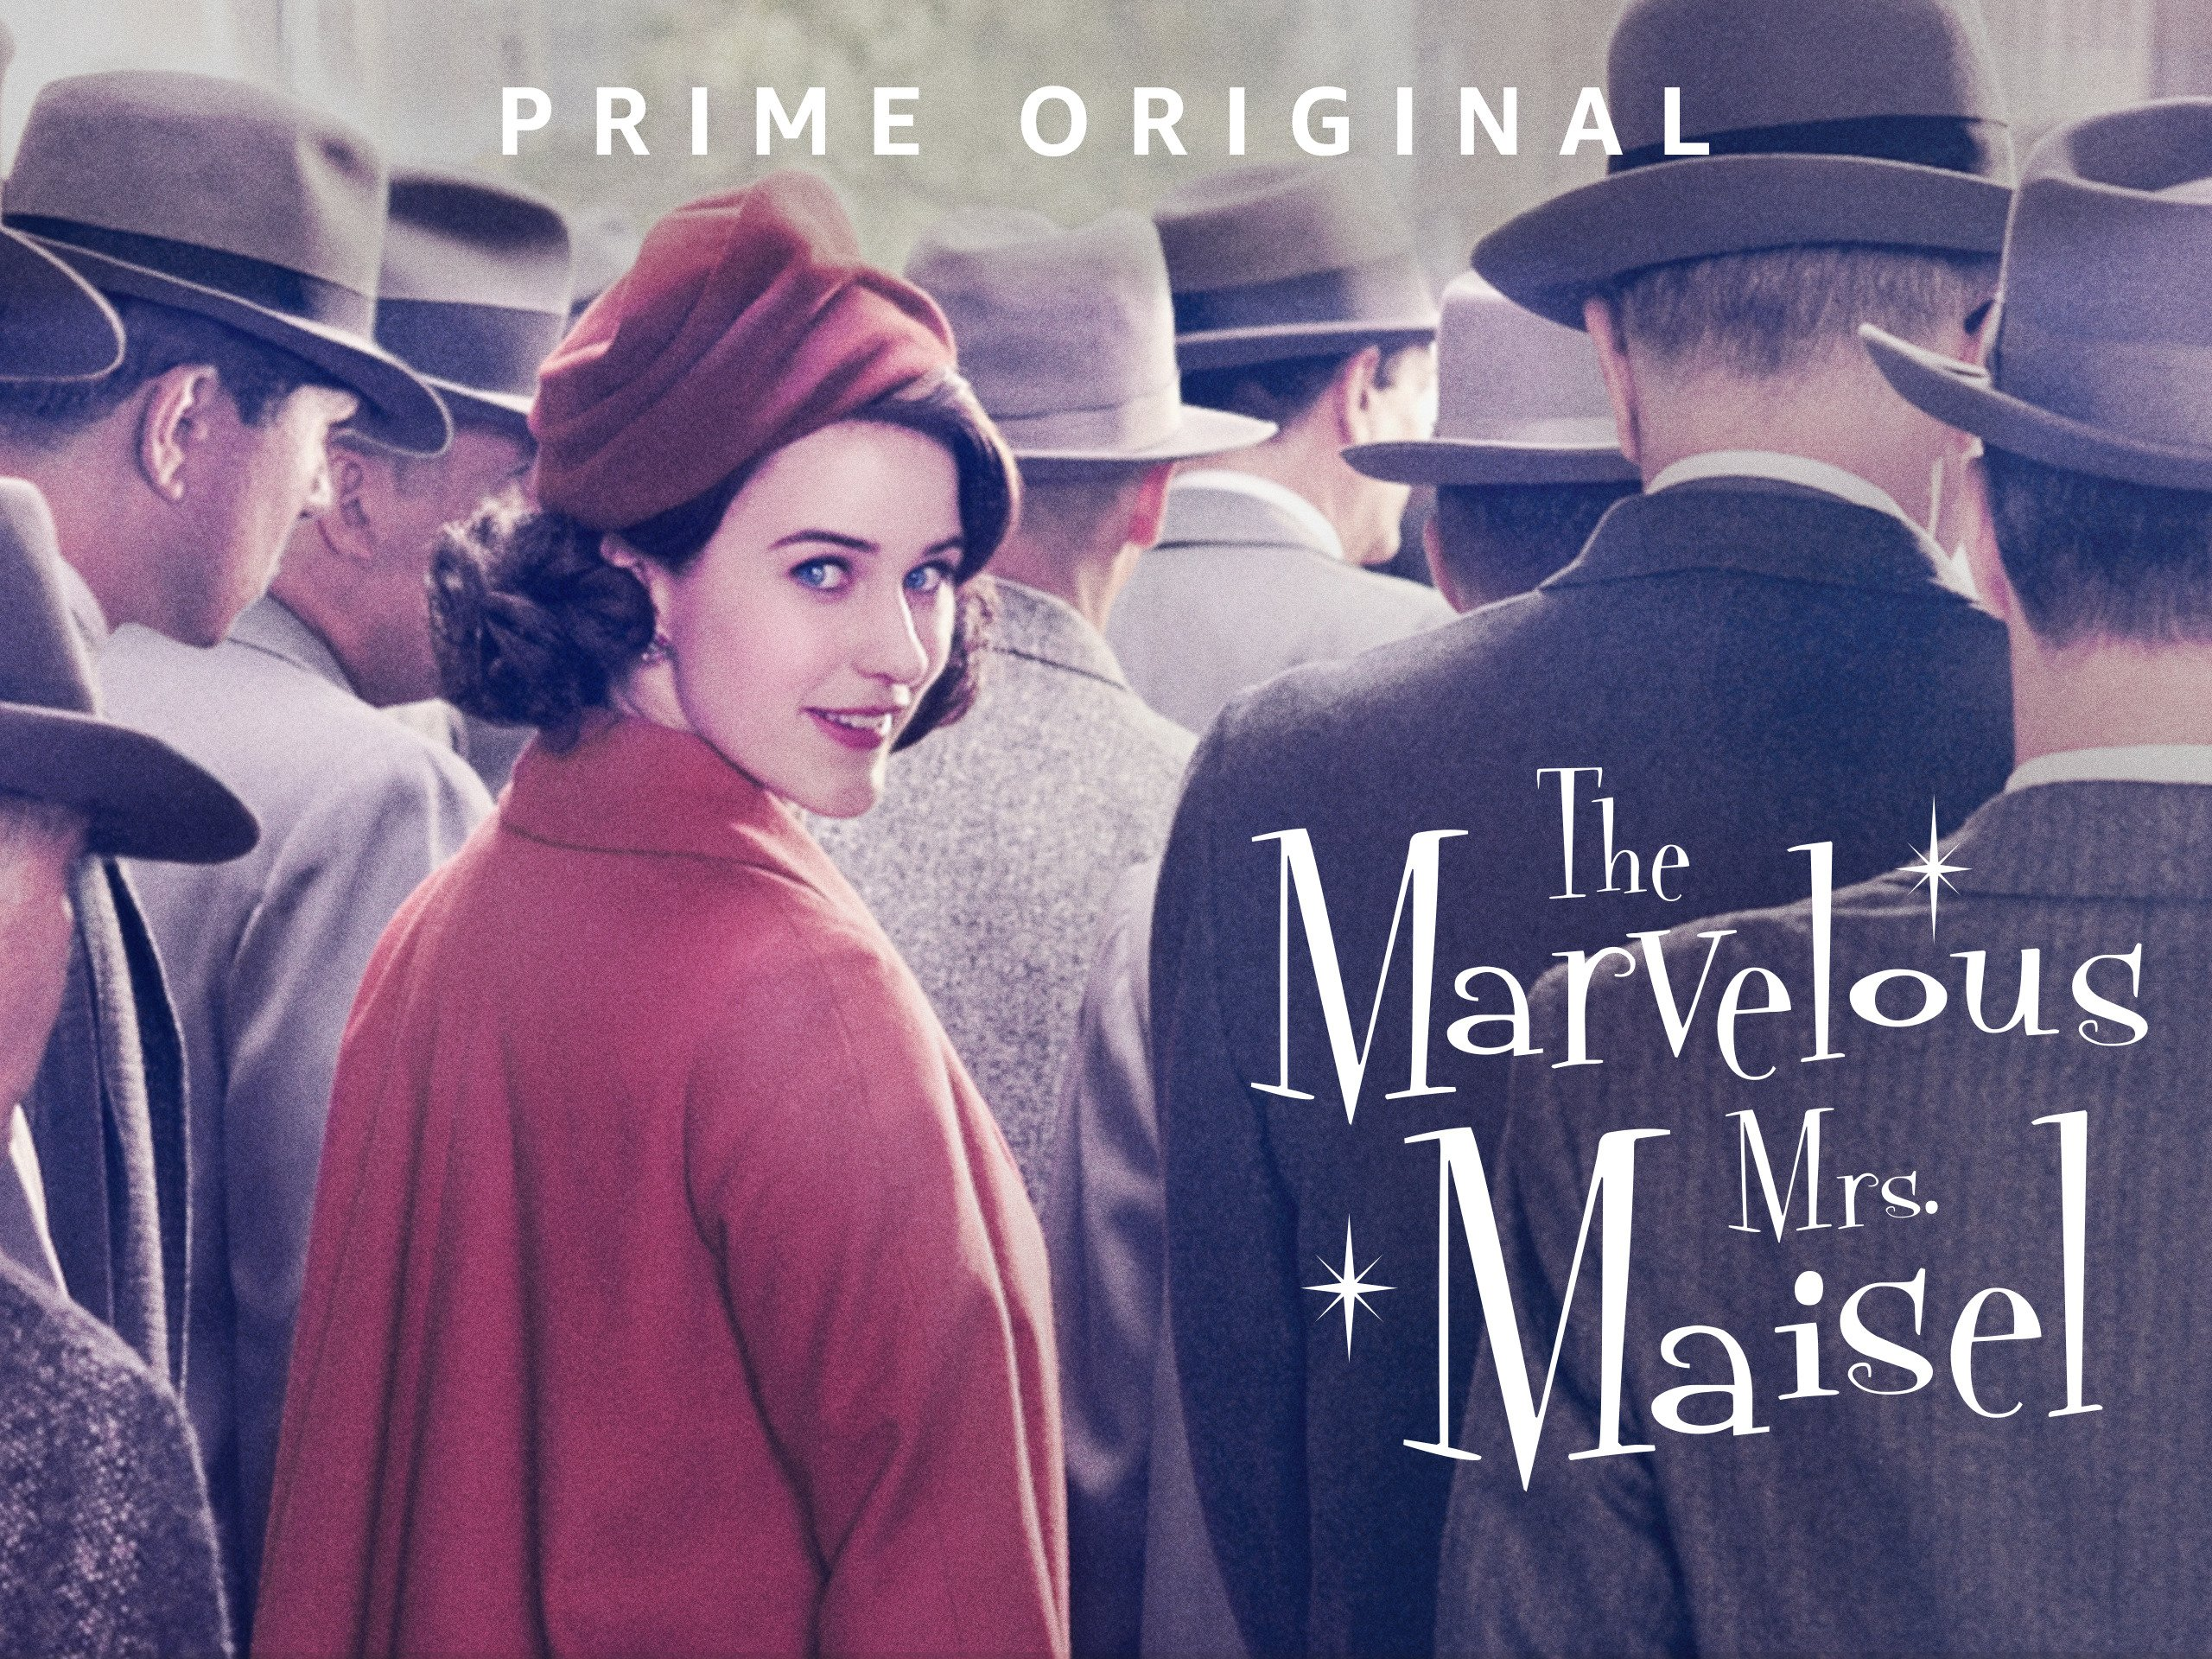 The Marvelous Mrs. Maisel : 2 saisons exceptionnelles